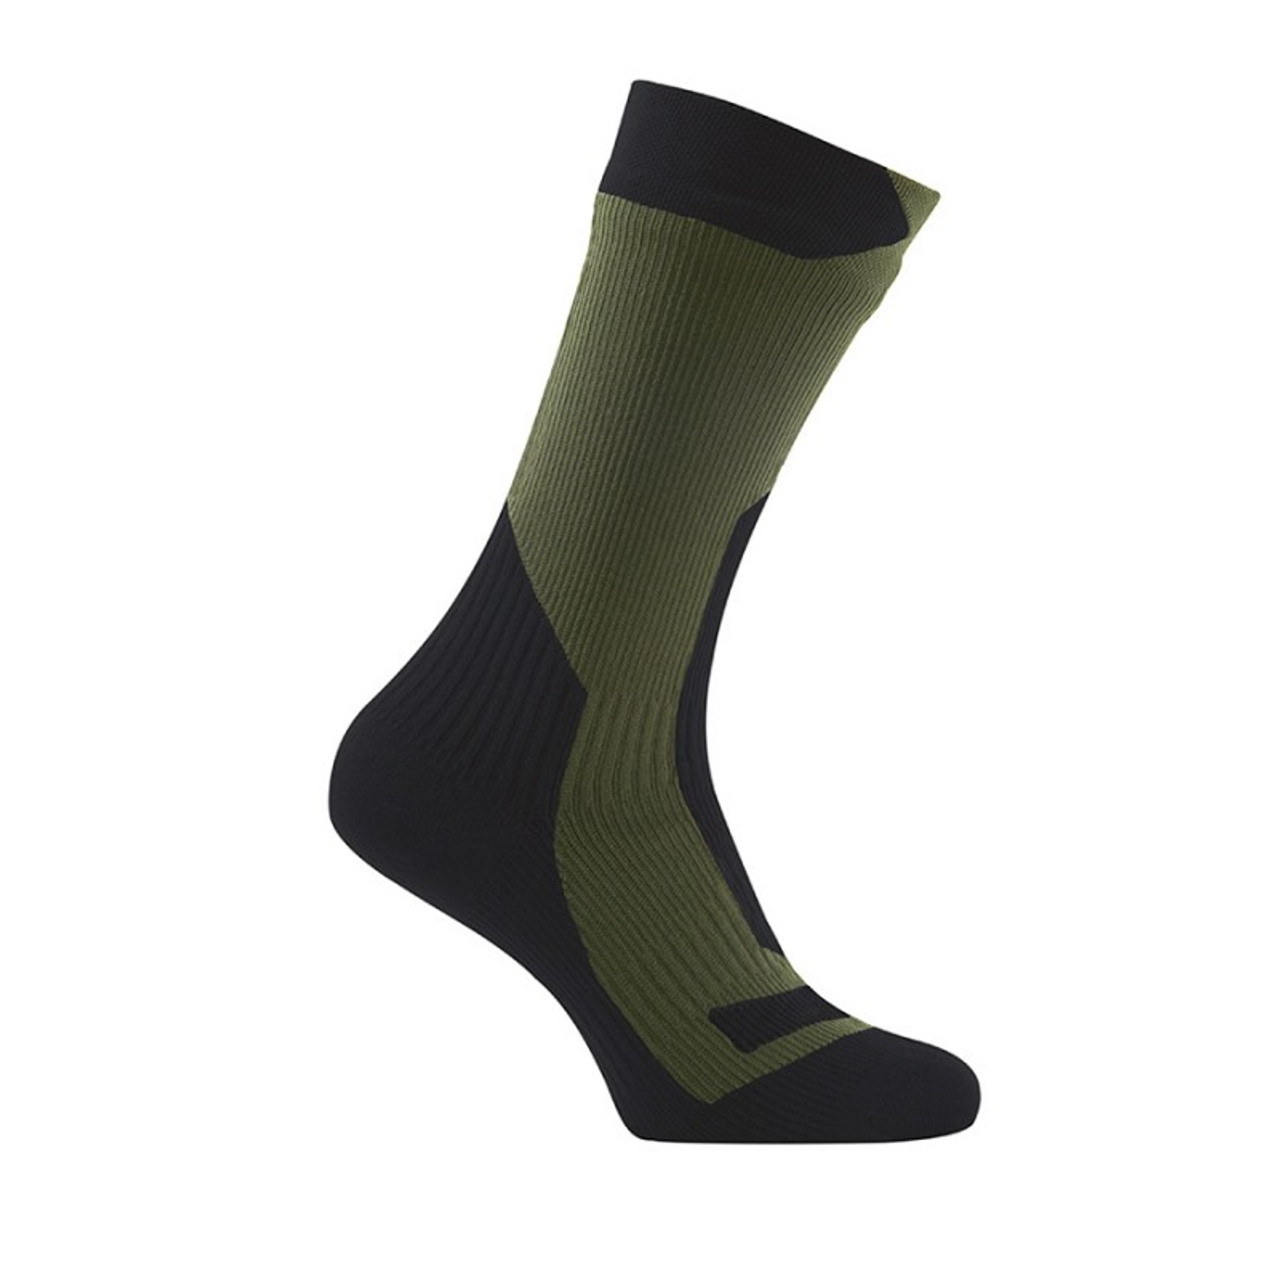 SealSkinz Thick WeightTrekking Sock, buy from bradford stalker at cheap rates